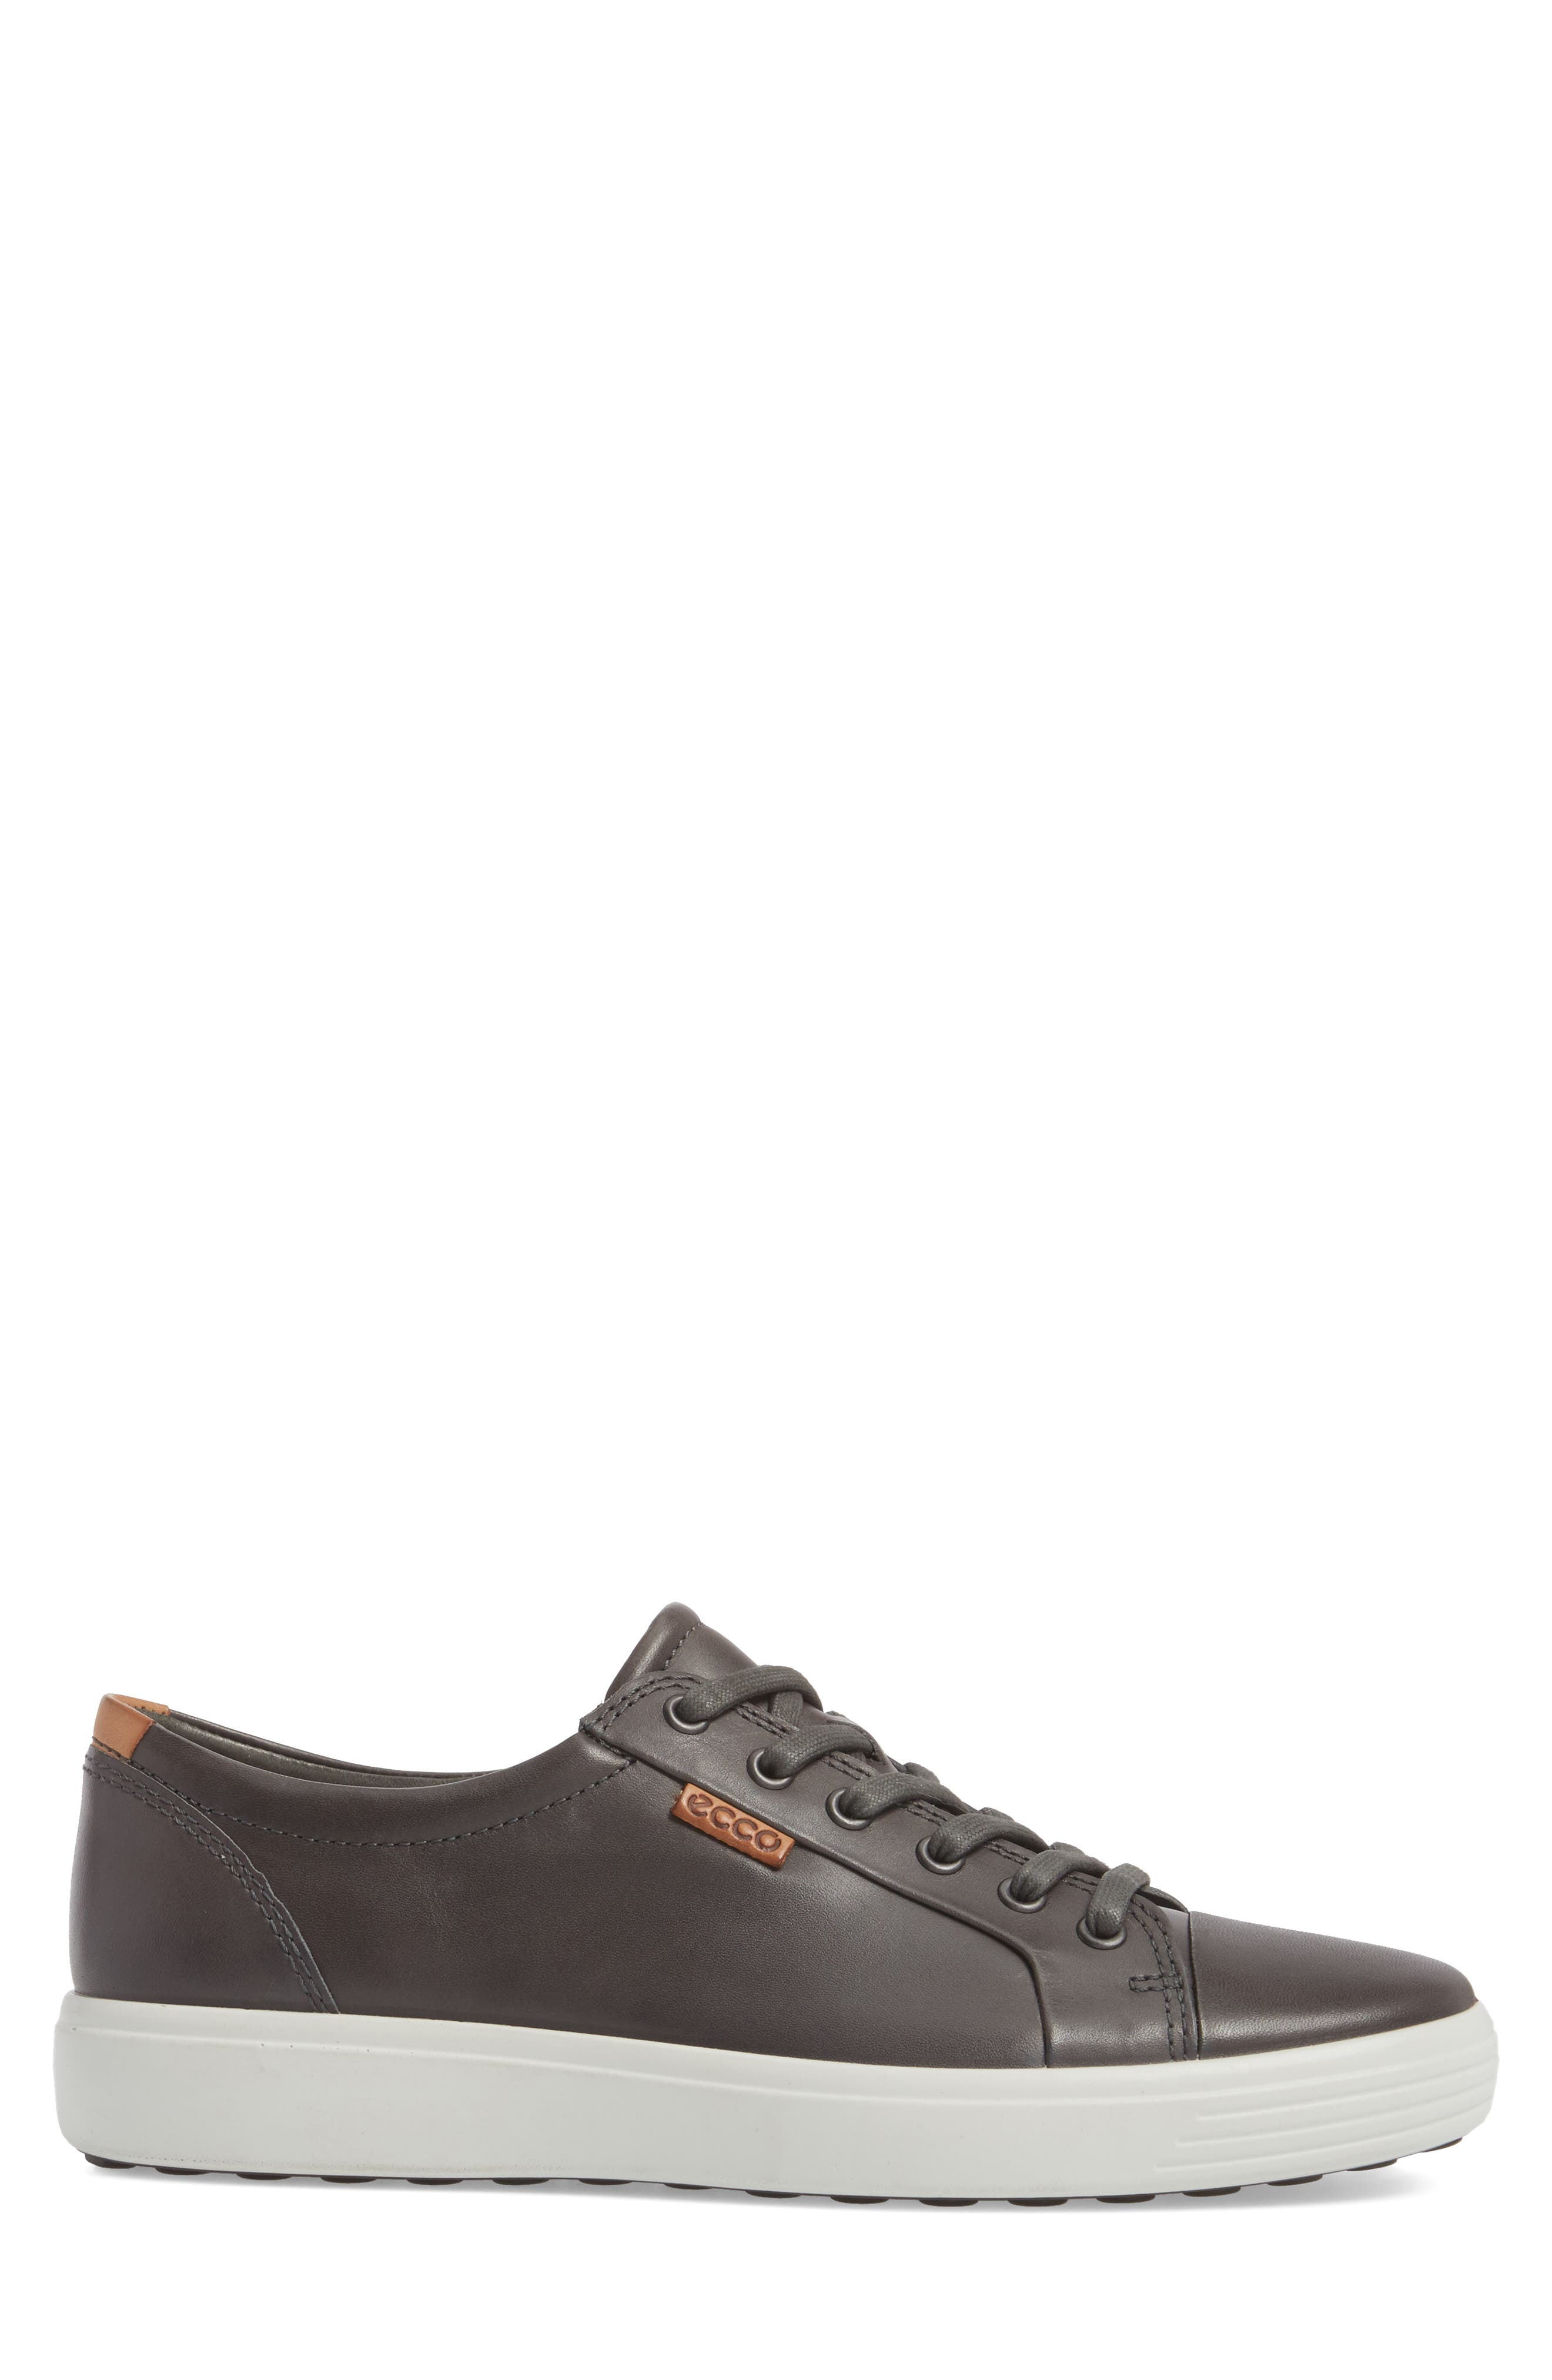 Soft VII Lace-Up Sneaker,                             Alternate thumbnail 41, color,